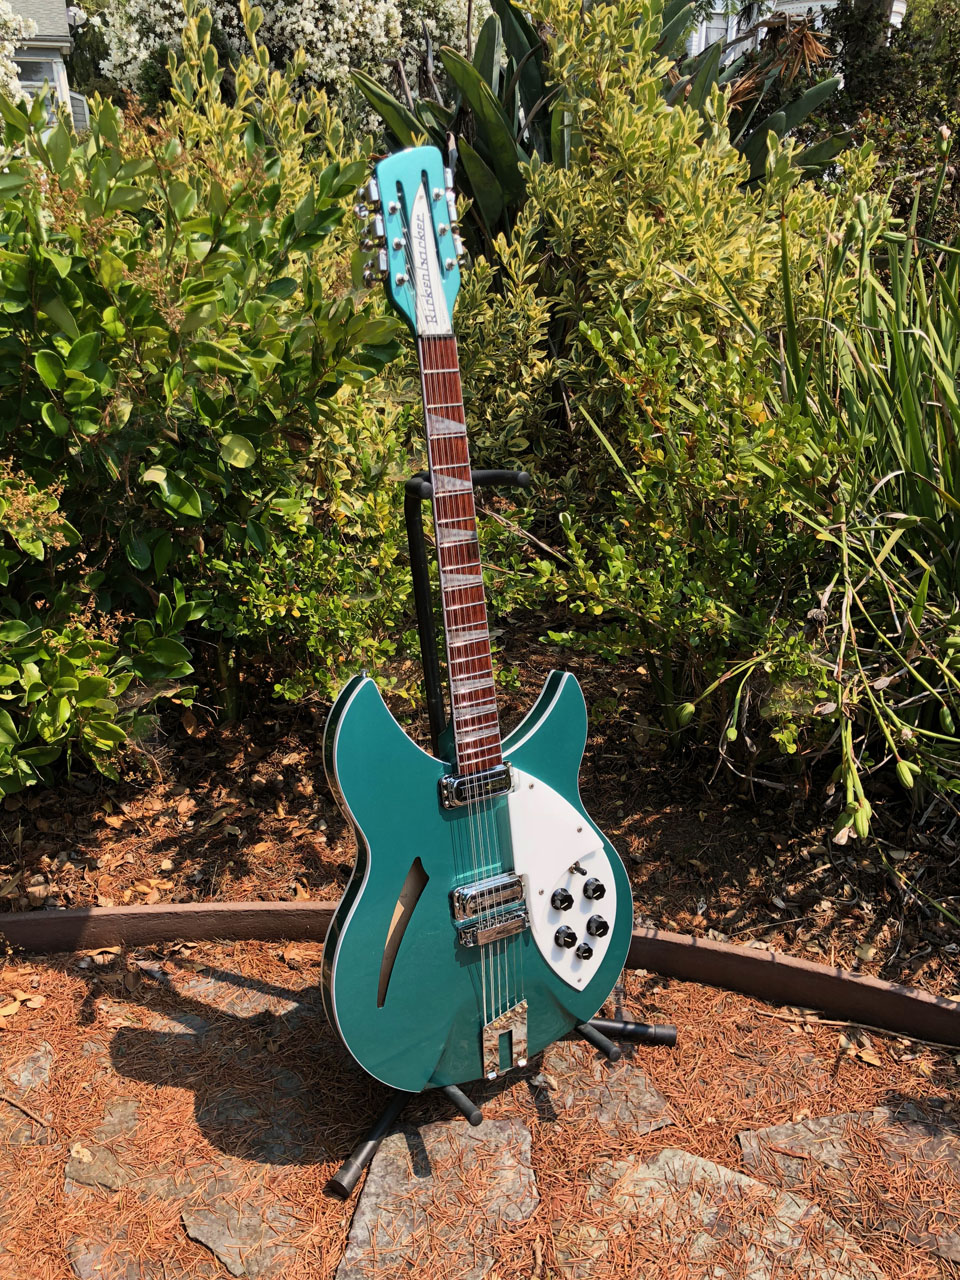 TURQUOISE IS A FAVORITE RICKENBACKER CUSTOM COLOR!